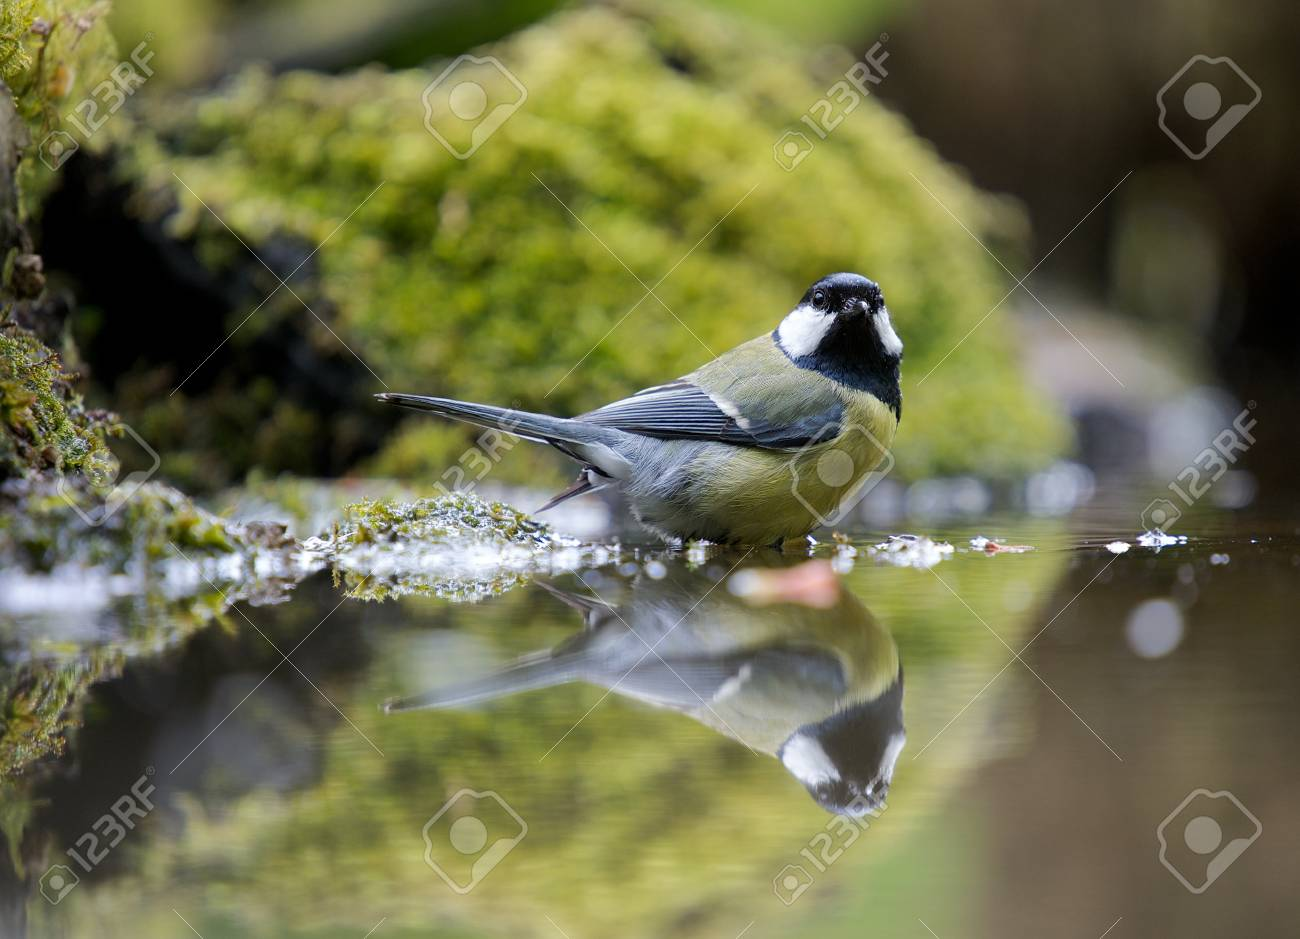 A photo of a songbird Stock Photo - 17007327